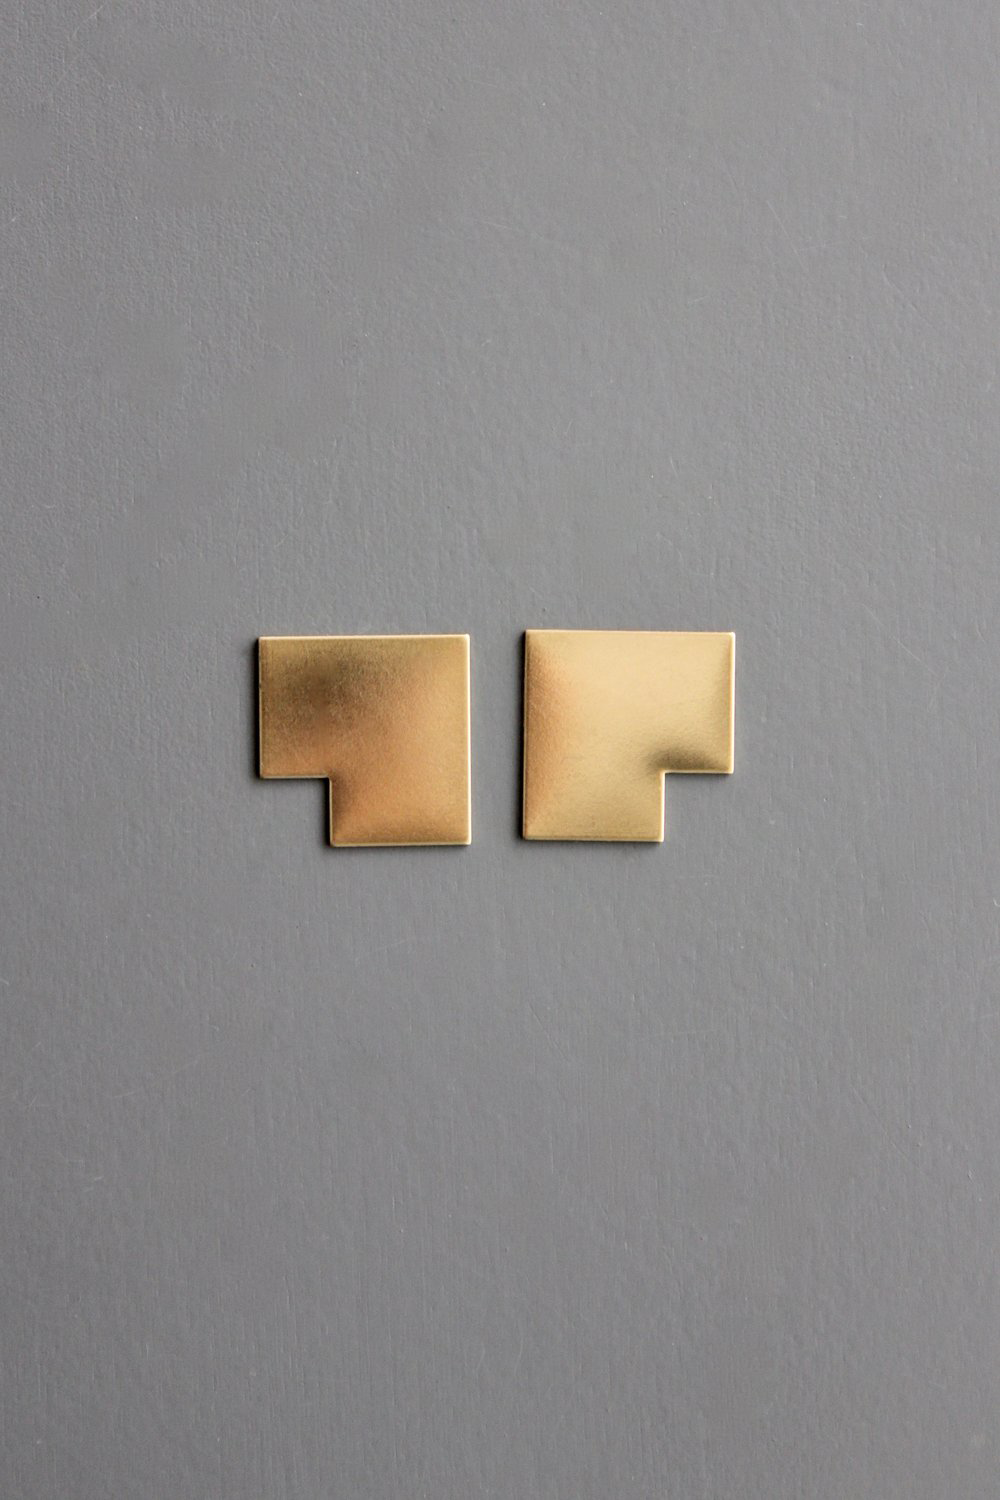 L Shaped Post Earrings